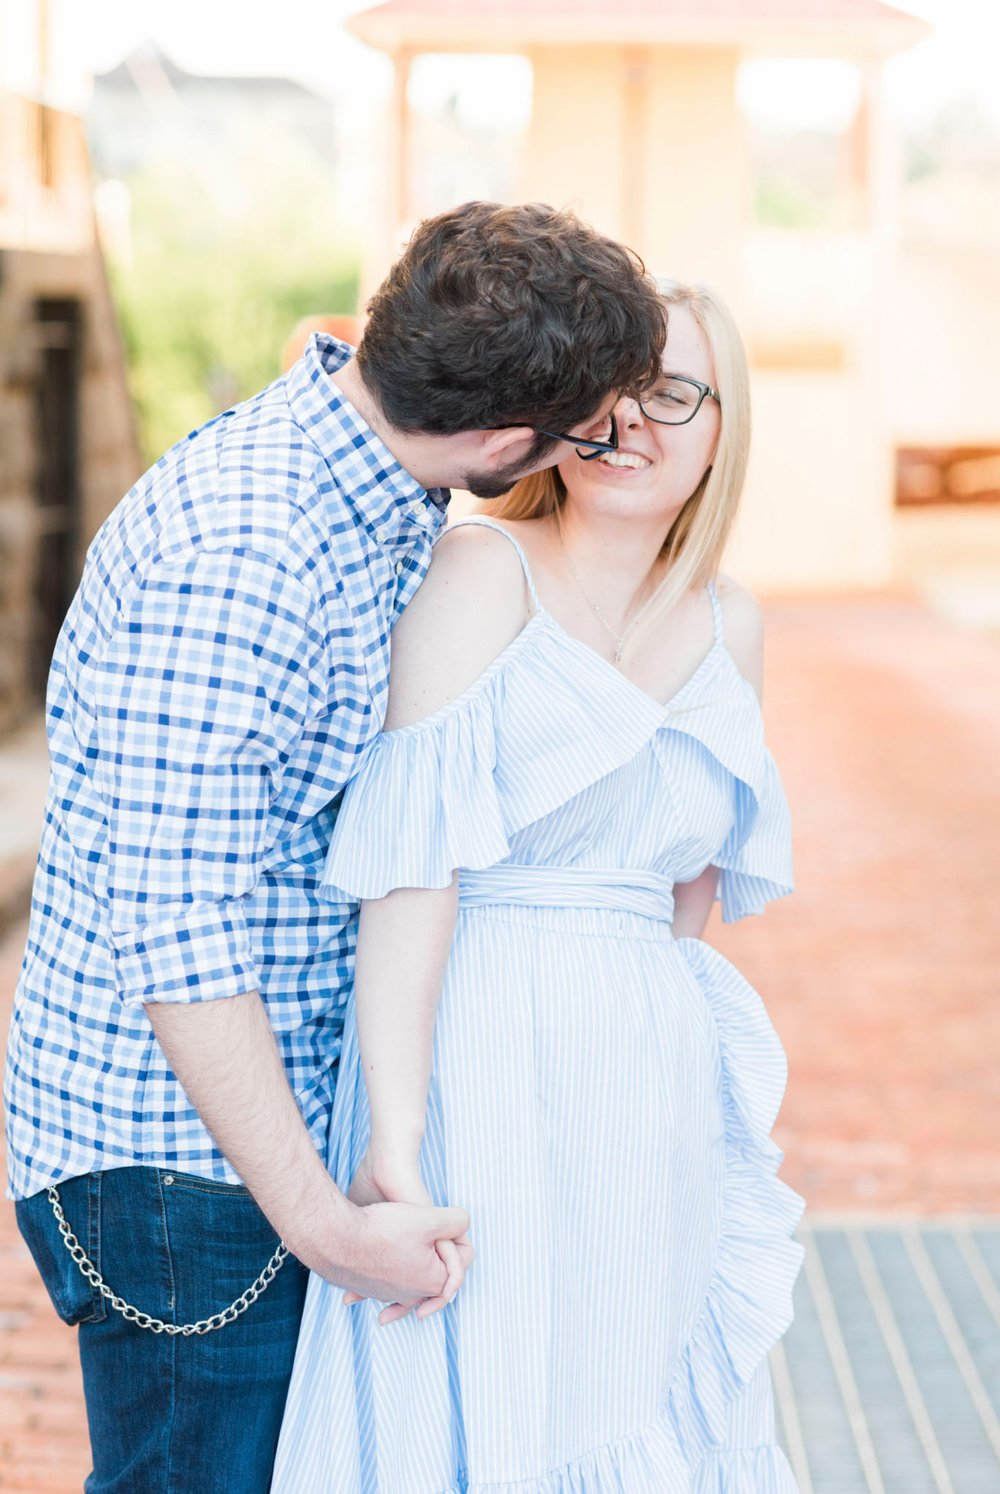 LaunceTarah_VirginiaWeddingPhotographer_EngagementSession_LynchburgVA_DowntownLynchburg_SpringEngagement 14.jpg